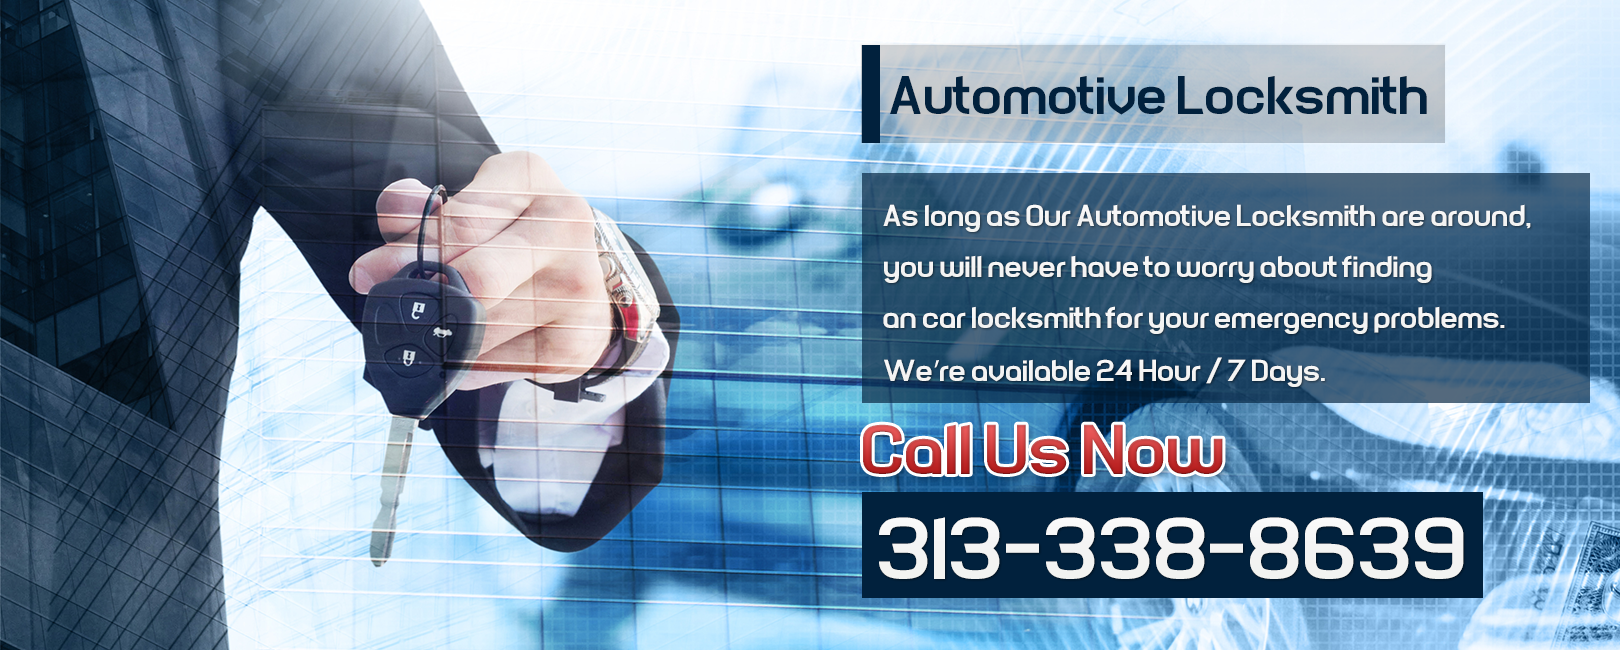 Automotive Locksmith Taylor MI